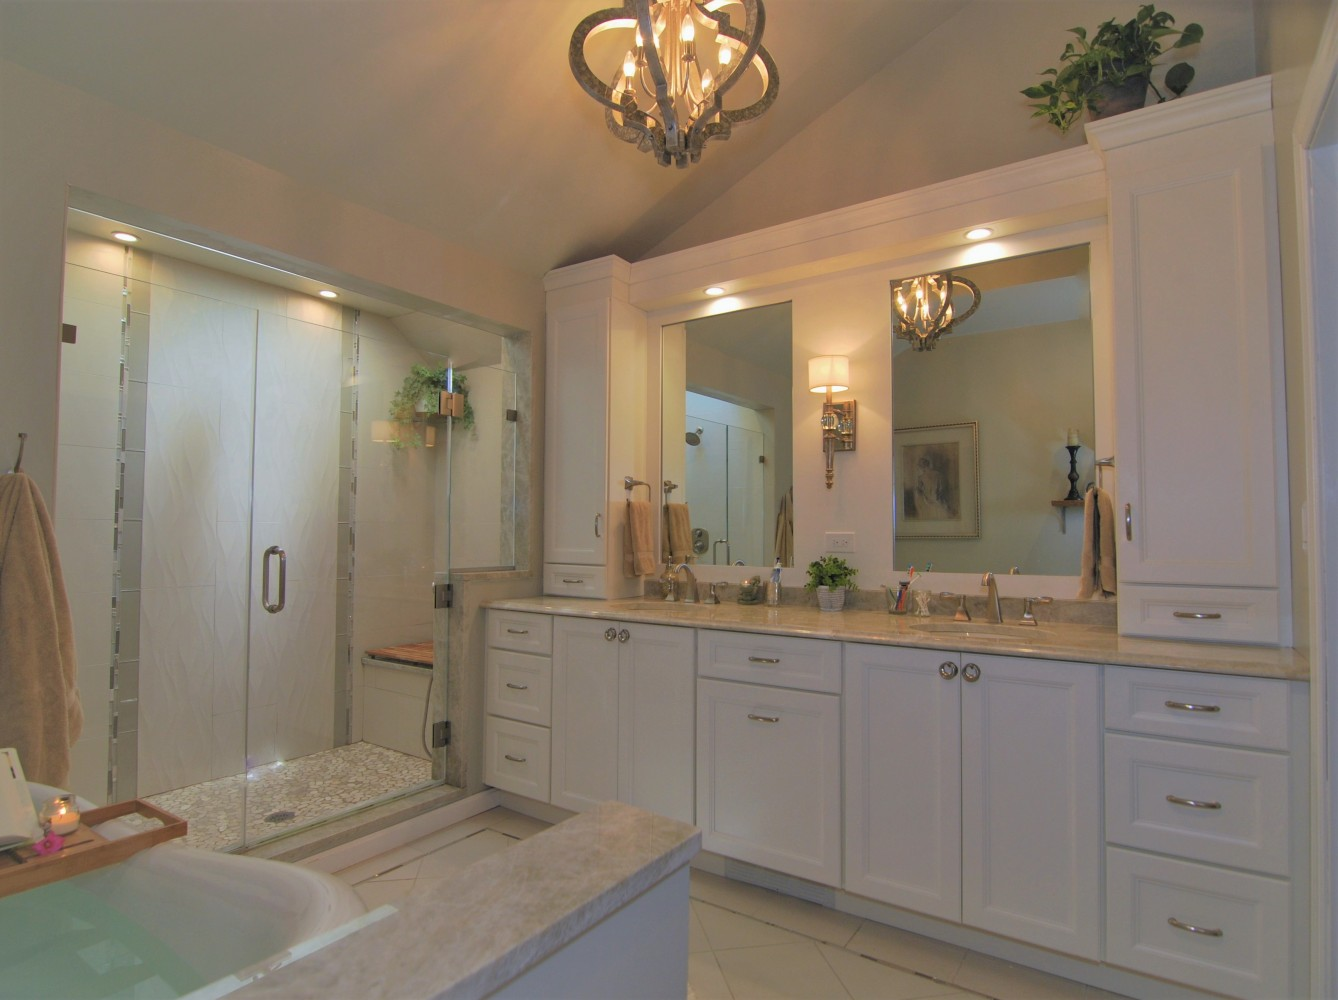 Best Spa Master Bath Design | Marlton NJ | Distinctive Interior Designs